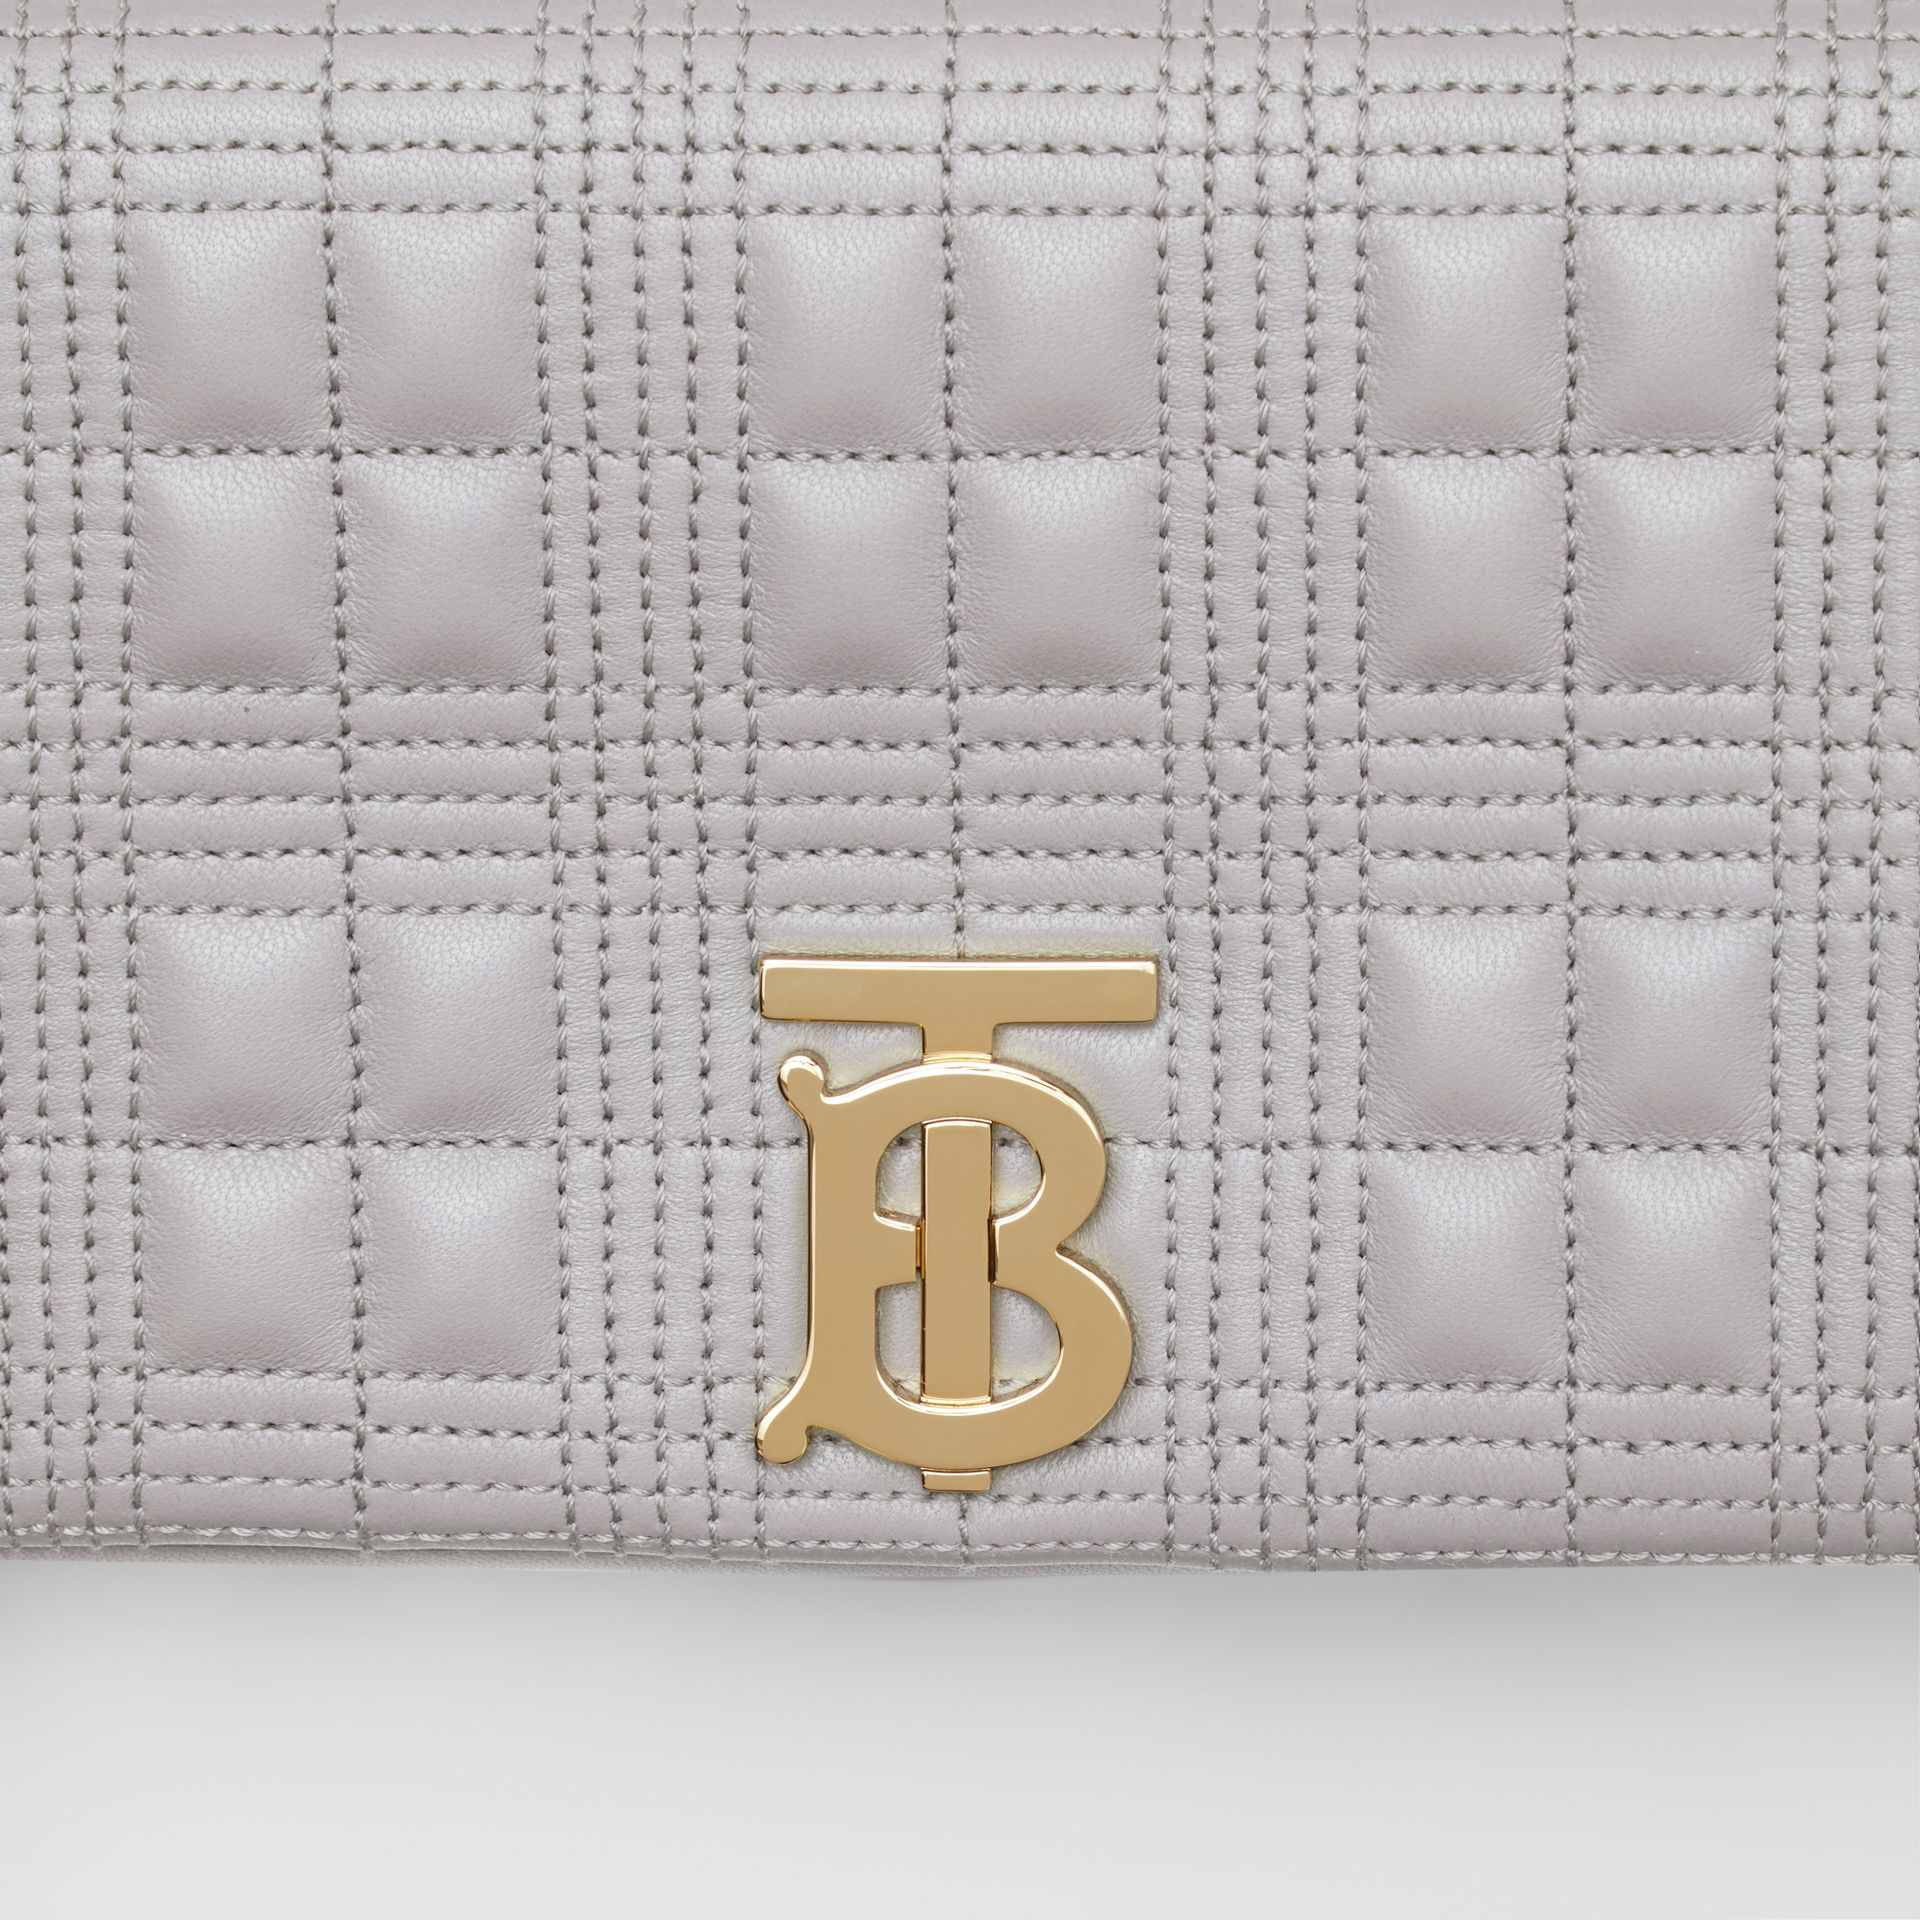 Small Quilted Lambskin Lola Bag in Cloud Grey | Burberry - gallery image 11